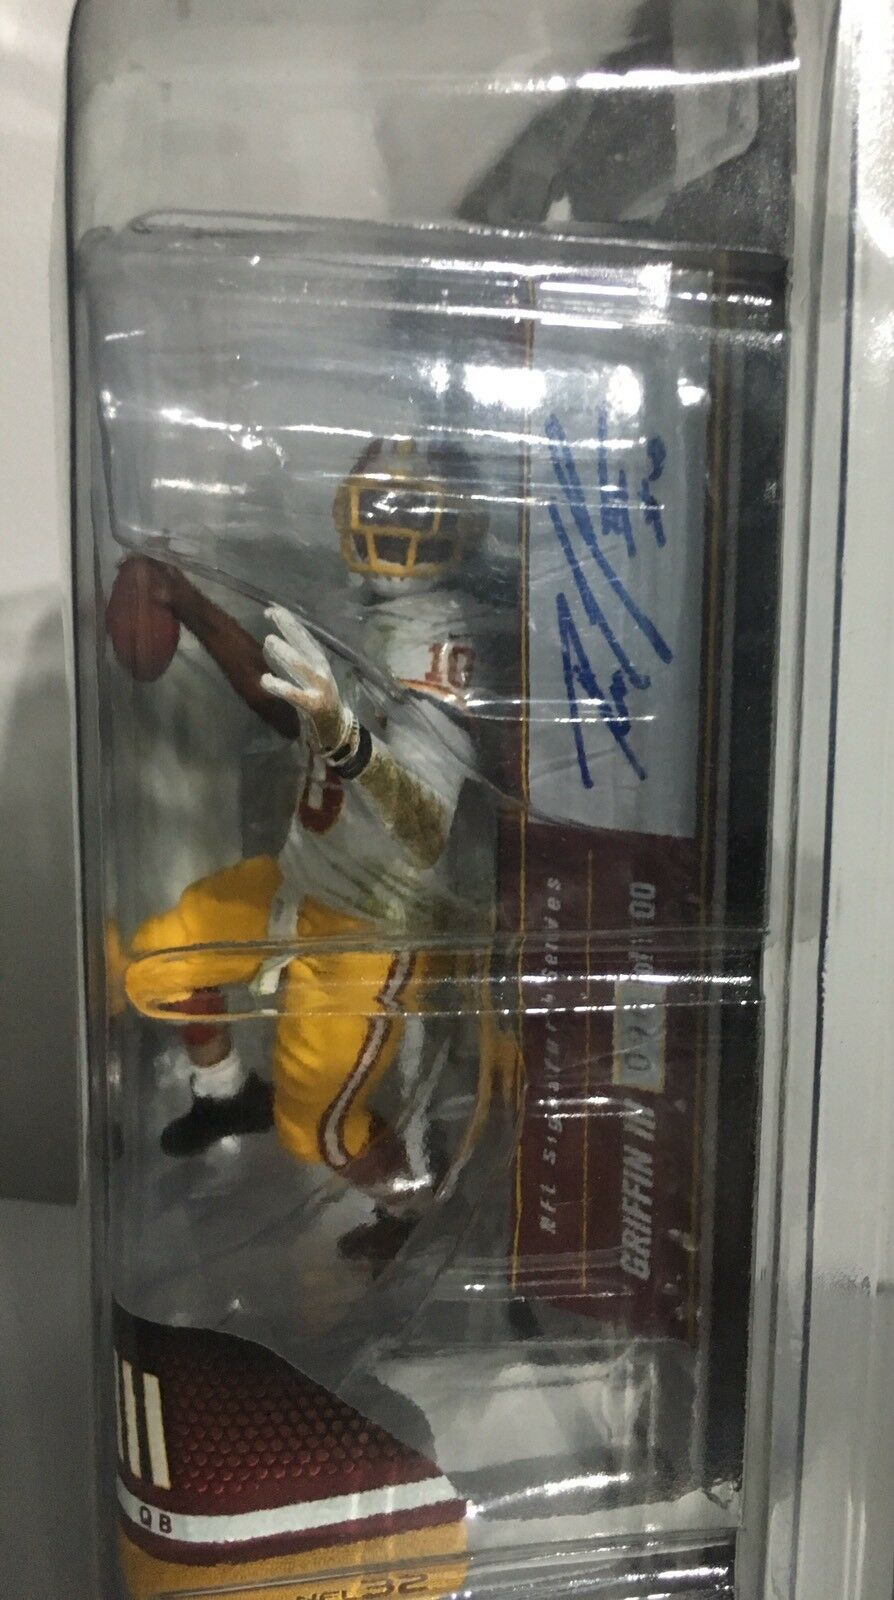 ROBERT GRIFFIN GRIFFIN GRIFFIN RG3 MCFARLAND TOYS RARE AUTOGRAPH AUTO VARIANT   100 BAYLOR 60def6